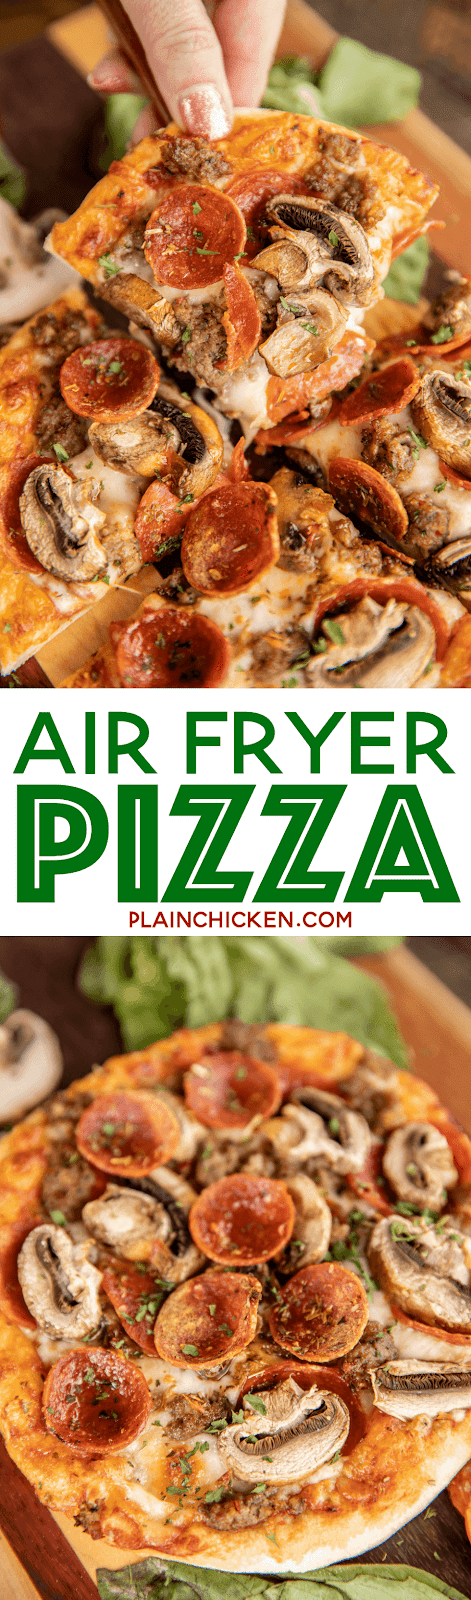 Air Fryer Pizza - hands down the BEST pizza EVER!! Individual pizzas ready to eat in 8 minutes. SO much better than delivery! Pizza dough, pizza sauce, mozzarella cheese and toppings. Use fresh store bought pizza dough or our Weight Watcher 2-Ingredient dough for a protein packed pizza. Great way to let the whole family get their favorite pizza! #airfryer #pizza